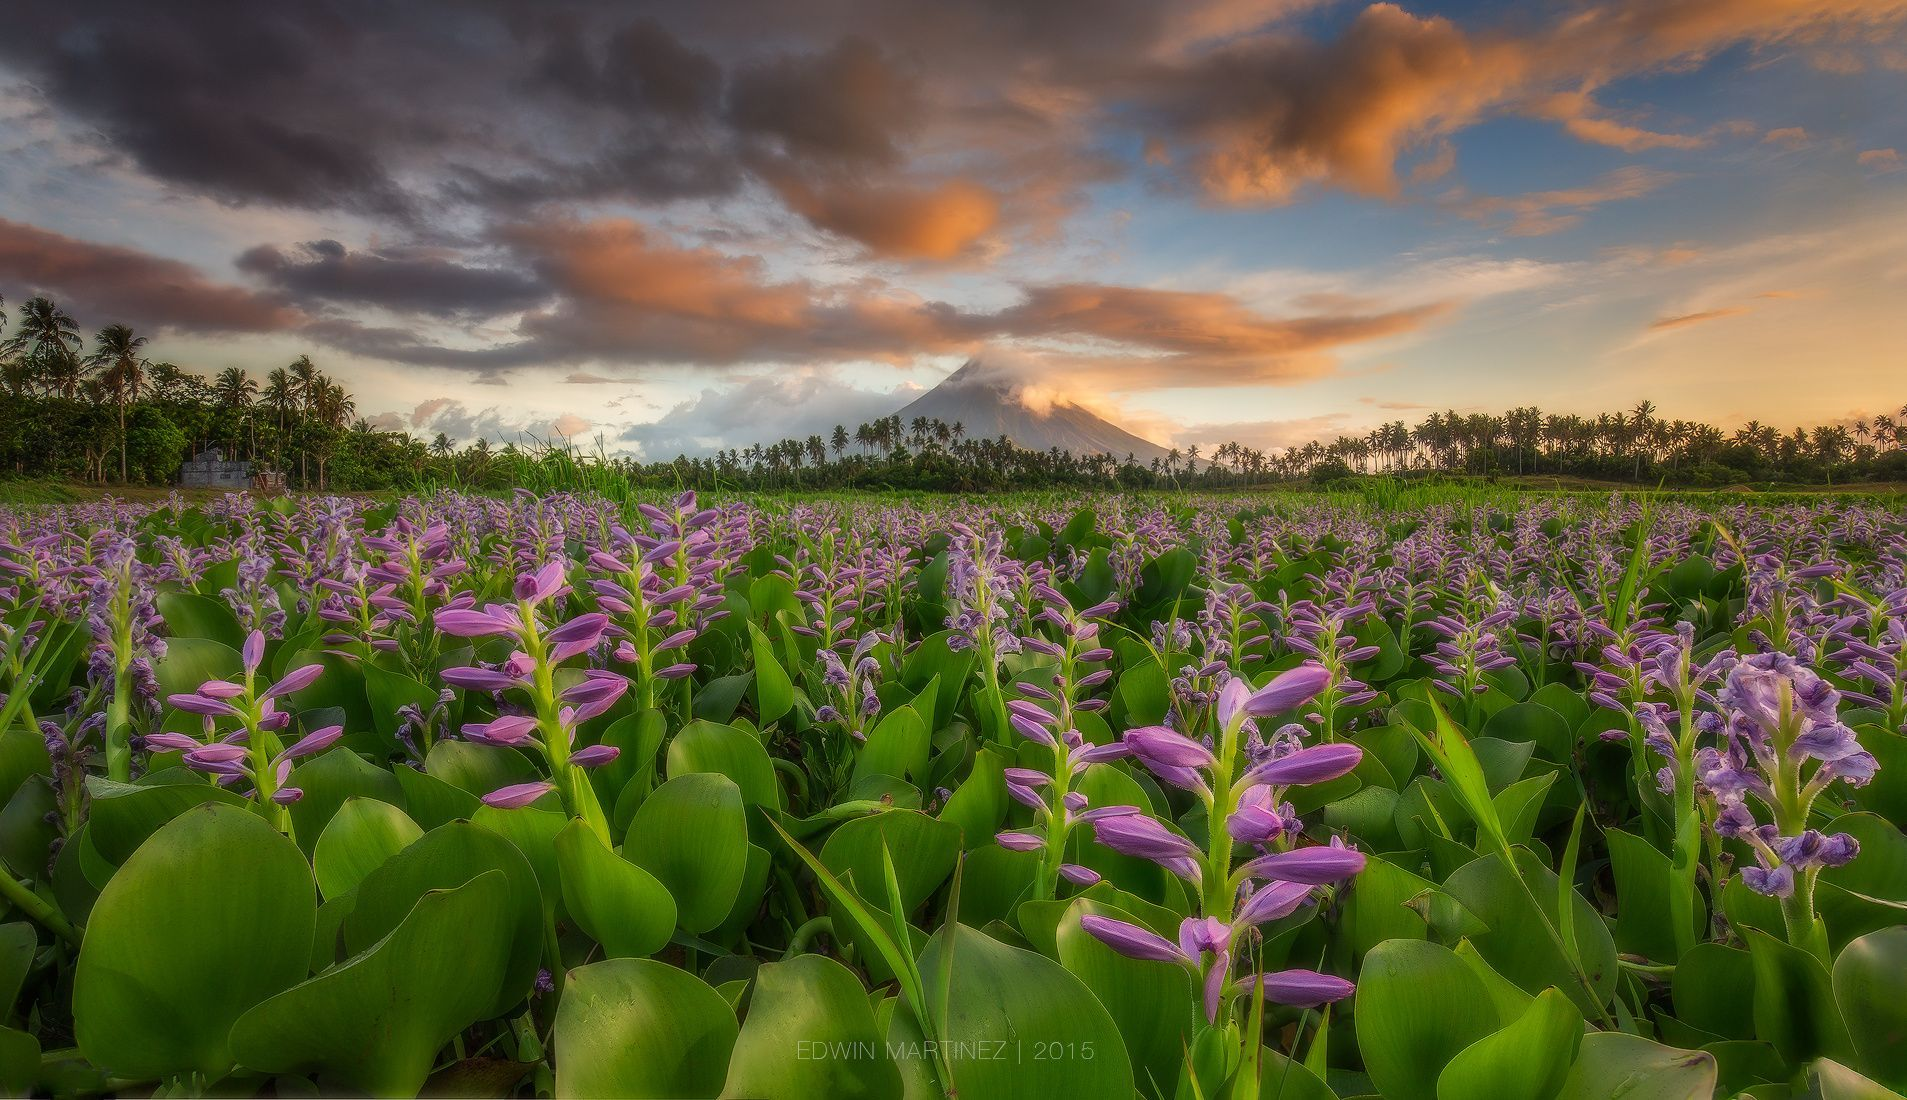 Field of Dreams by Edwin Martinez on 500px